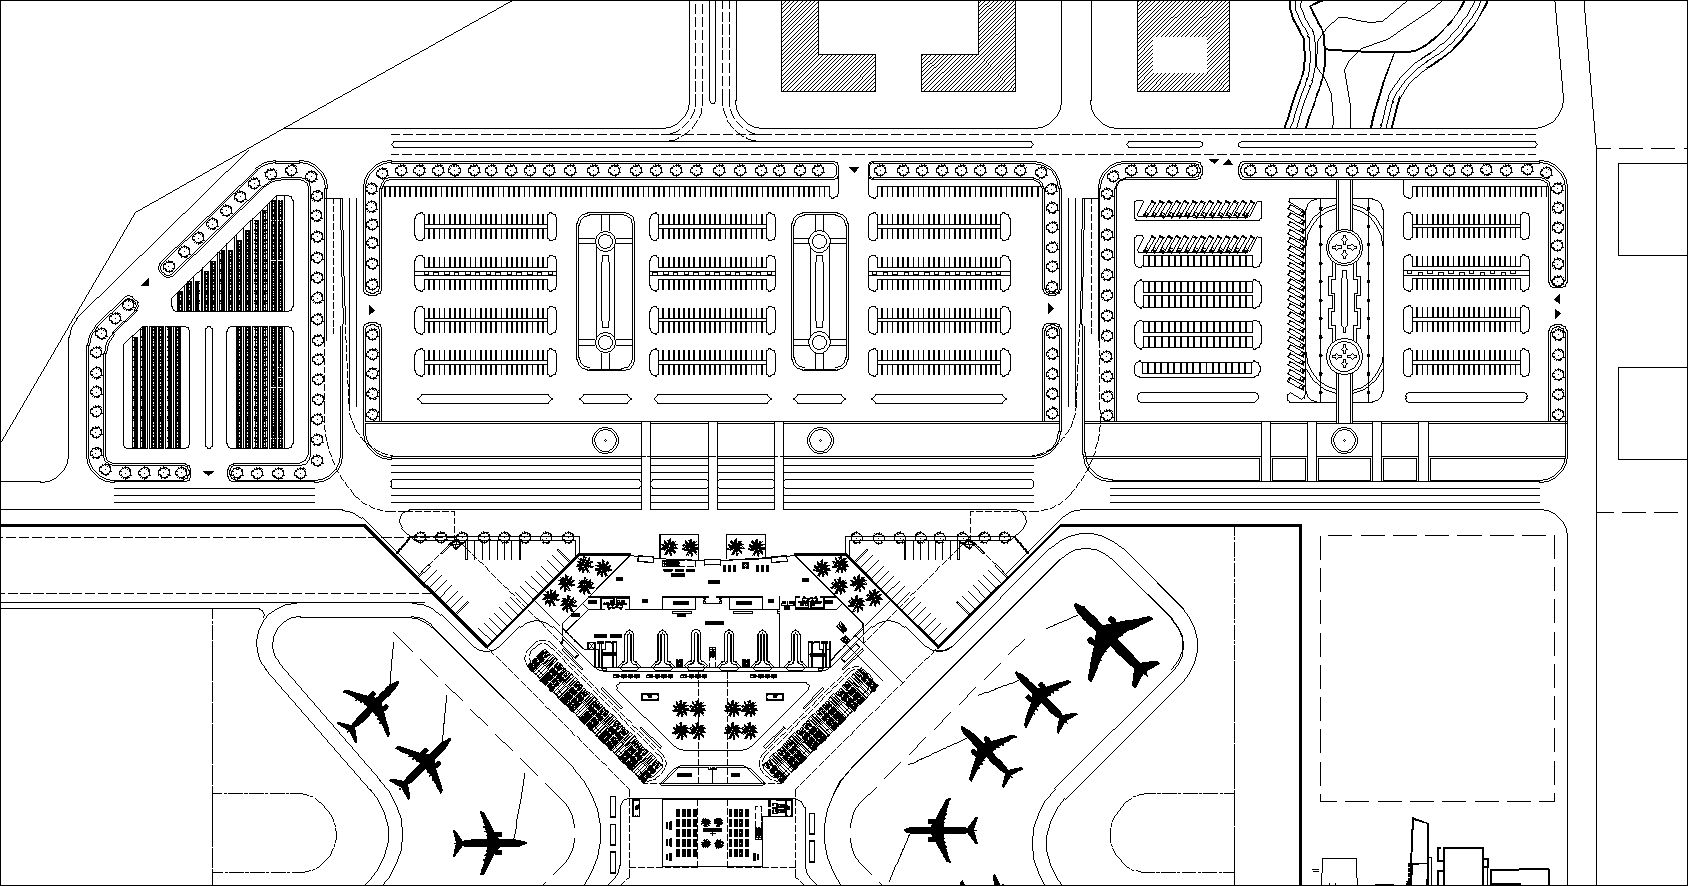 Airport plan,Terminal plan,elevation,details drawings